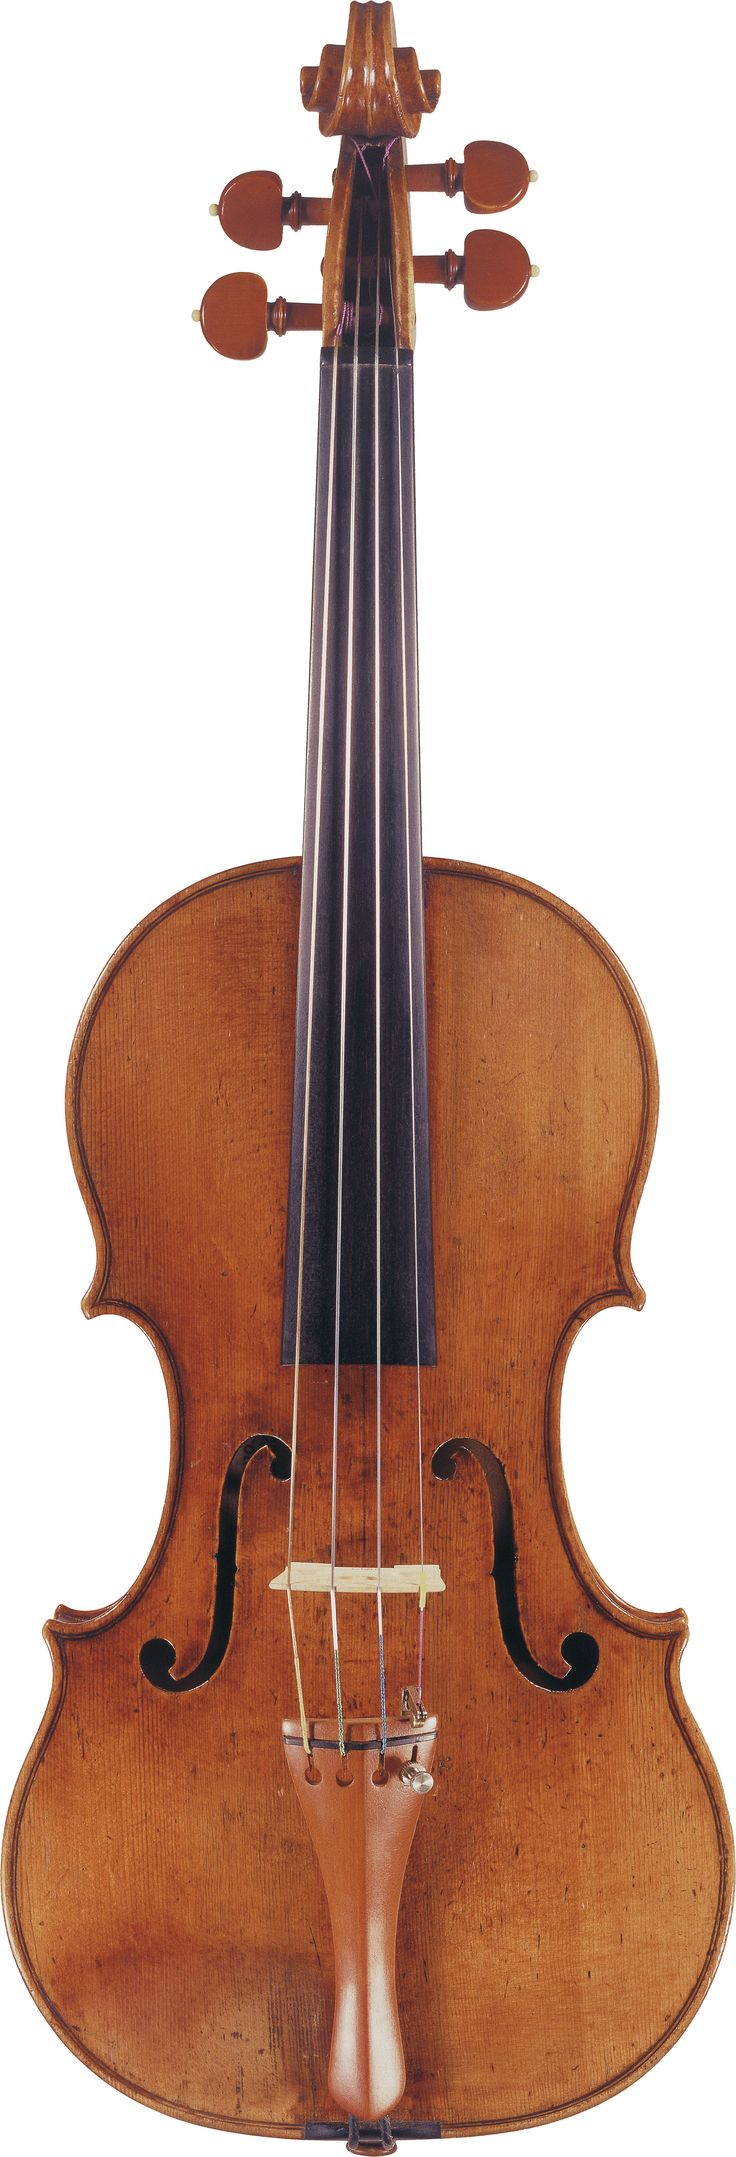 1693 Girolamo II Amati Violin with 351mm back from The Four Centuries Gallery